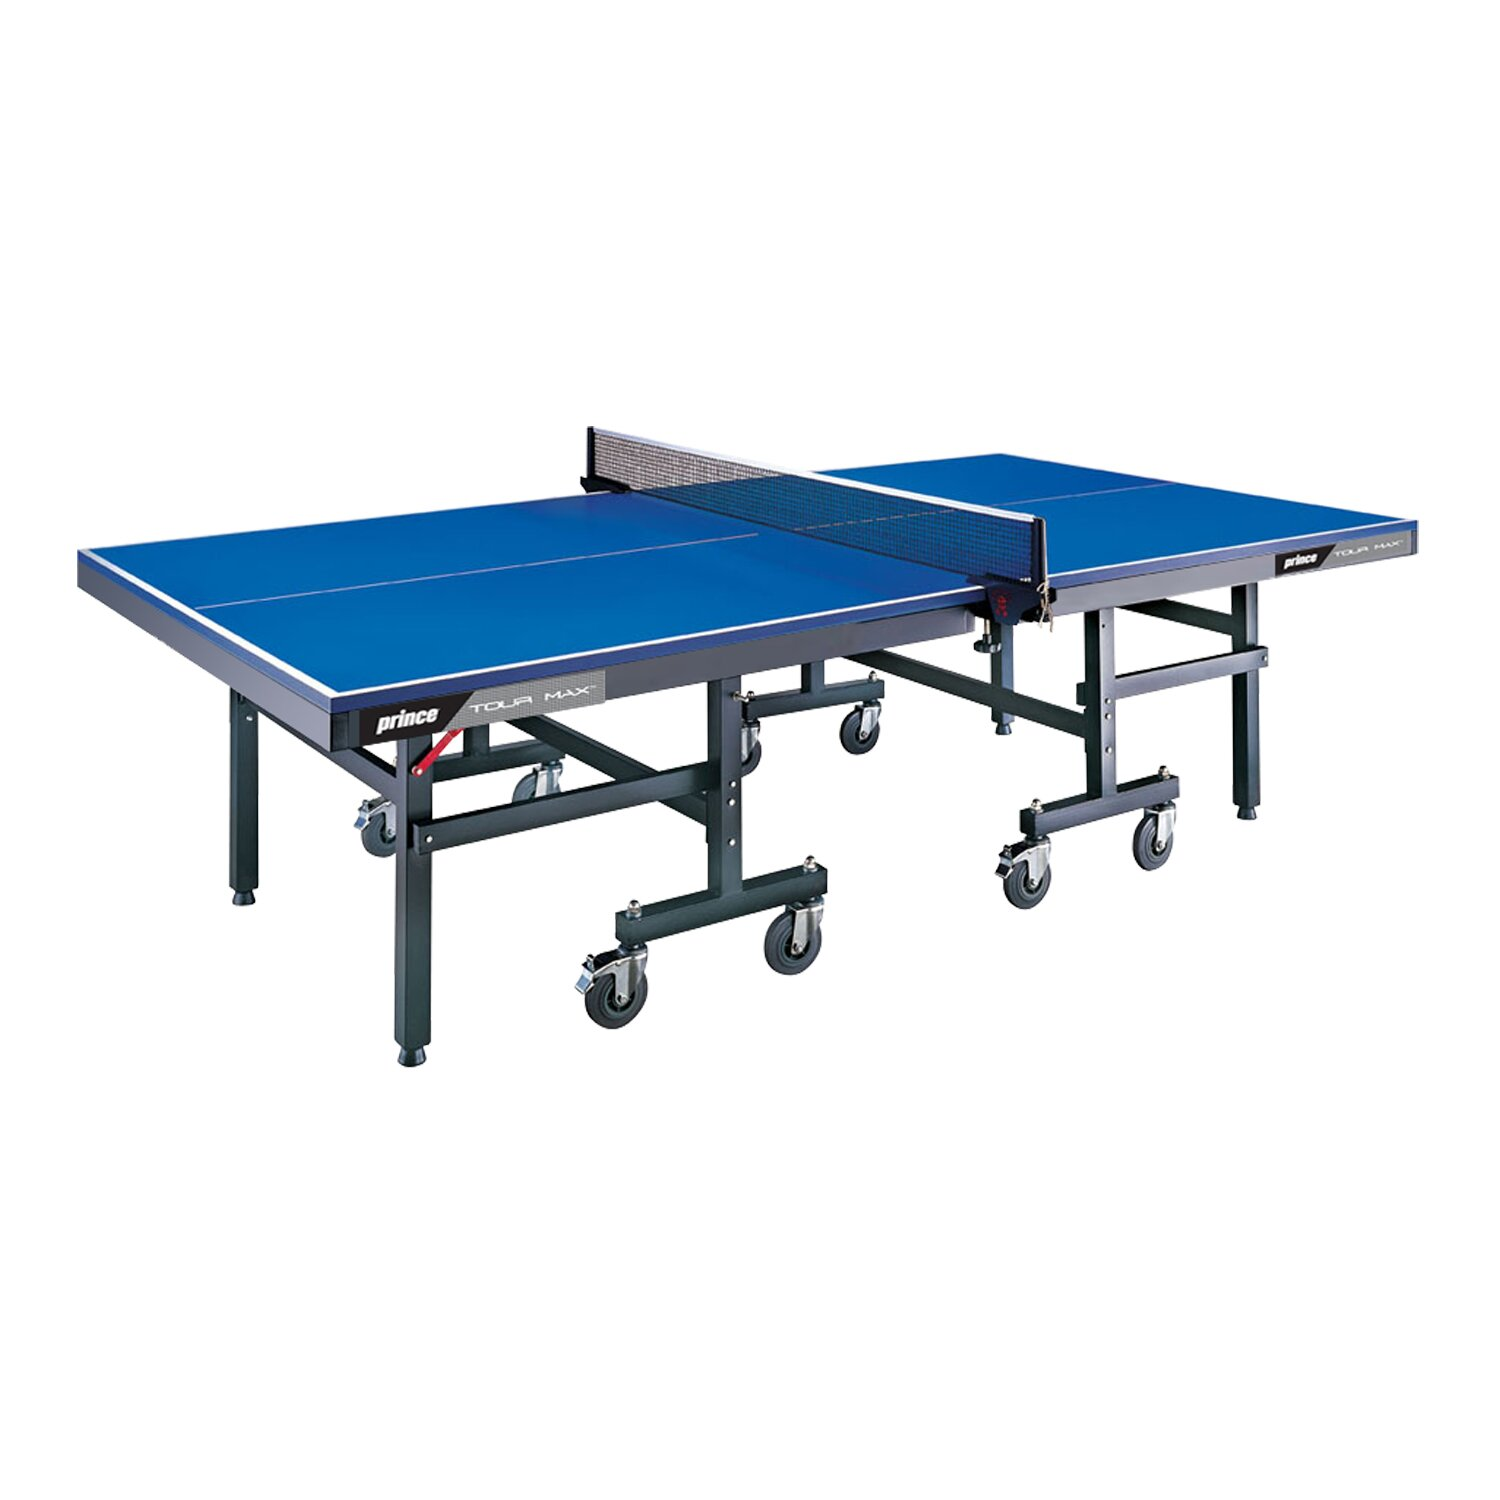 table tennis indoor version of lawn Play table tennis - amazingly realistic table tennis game.